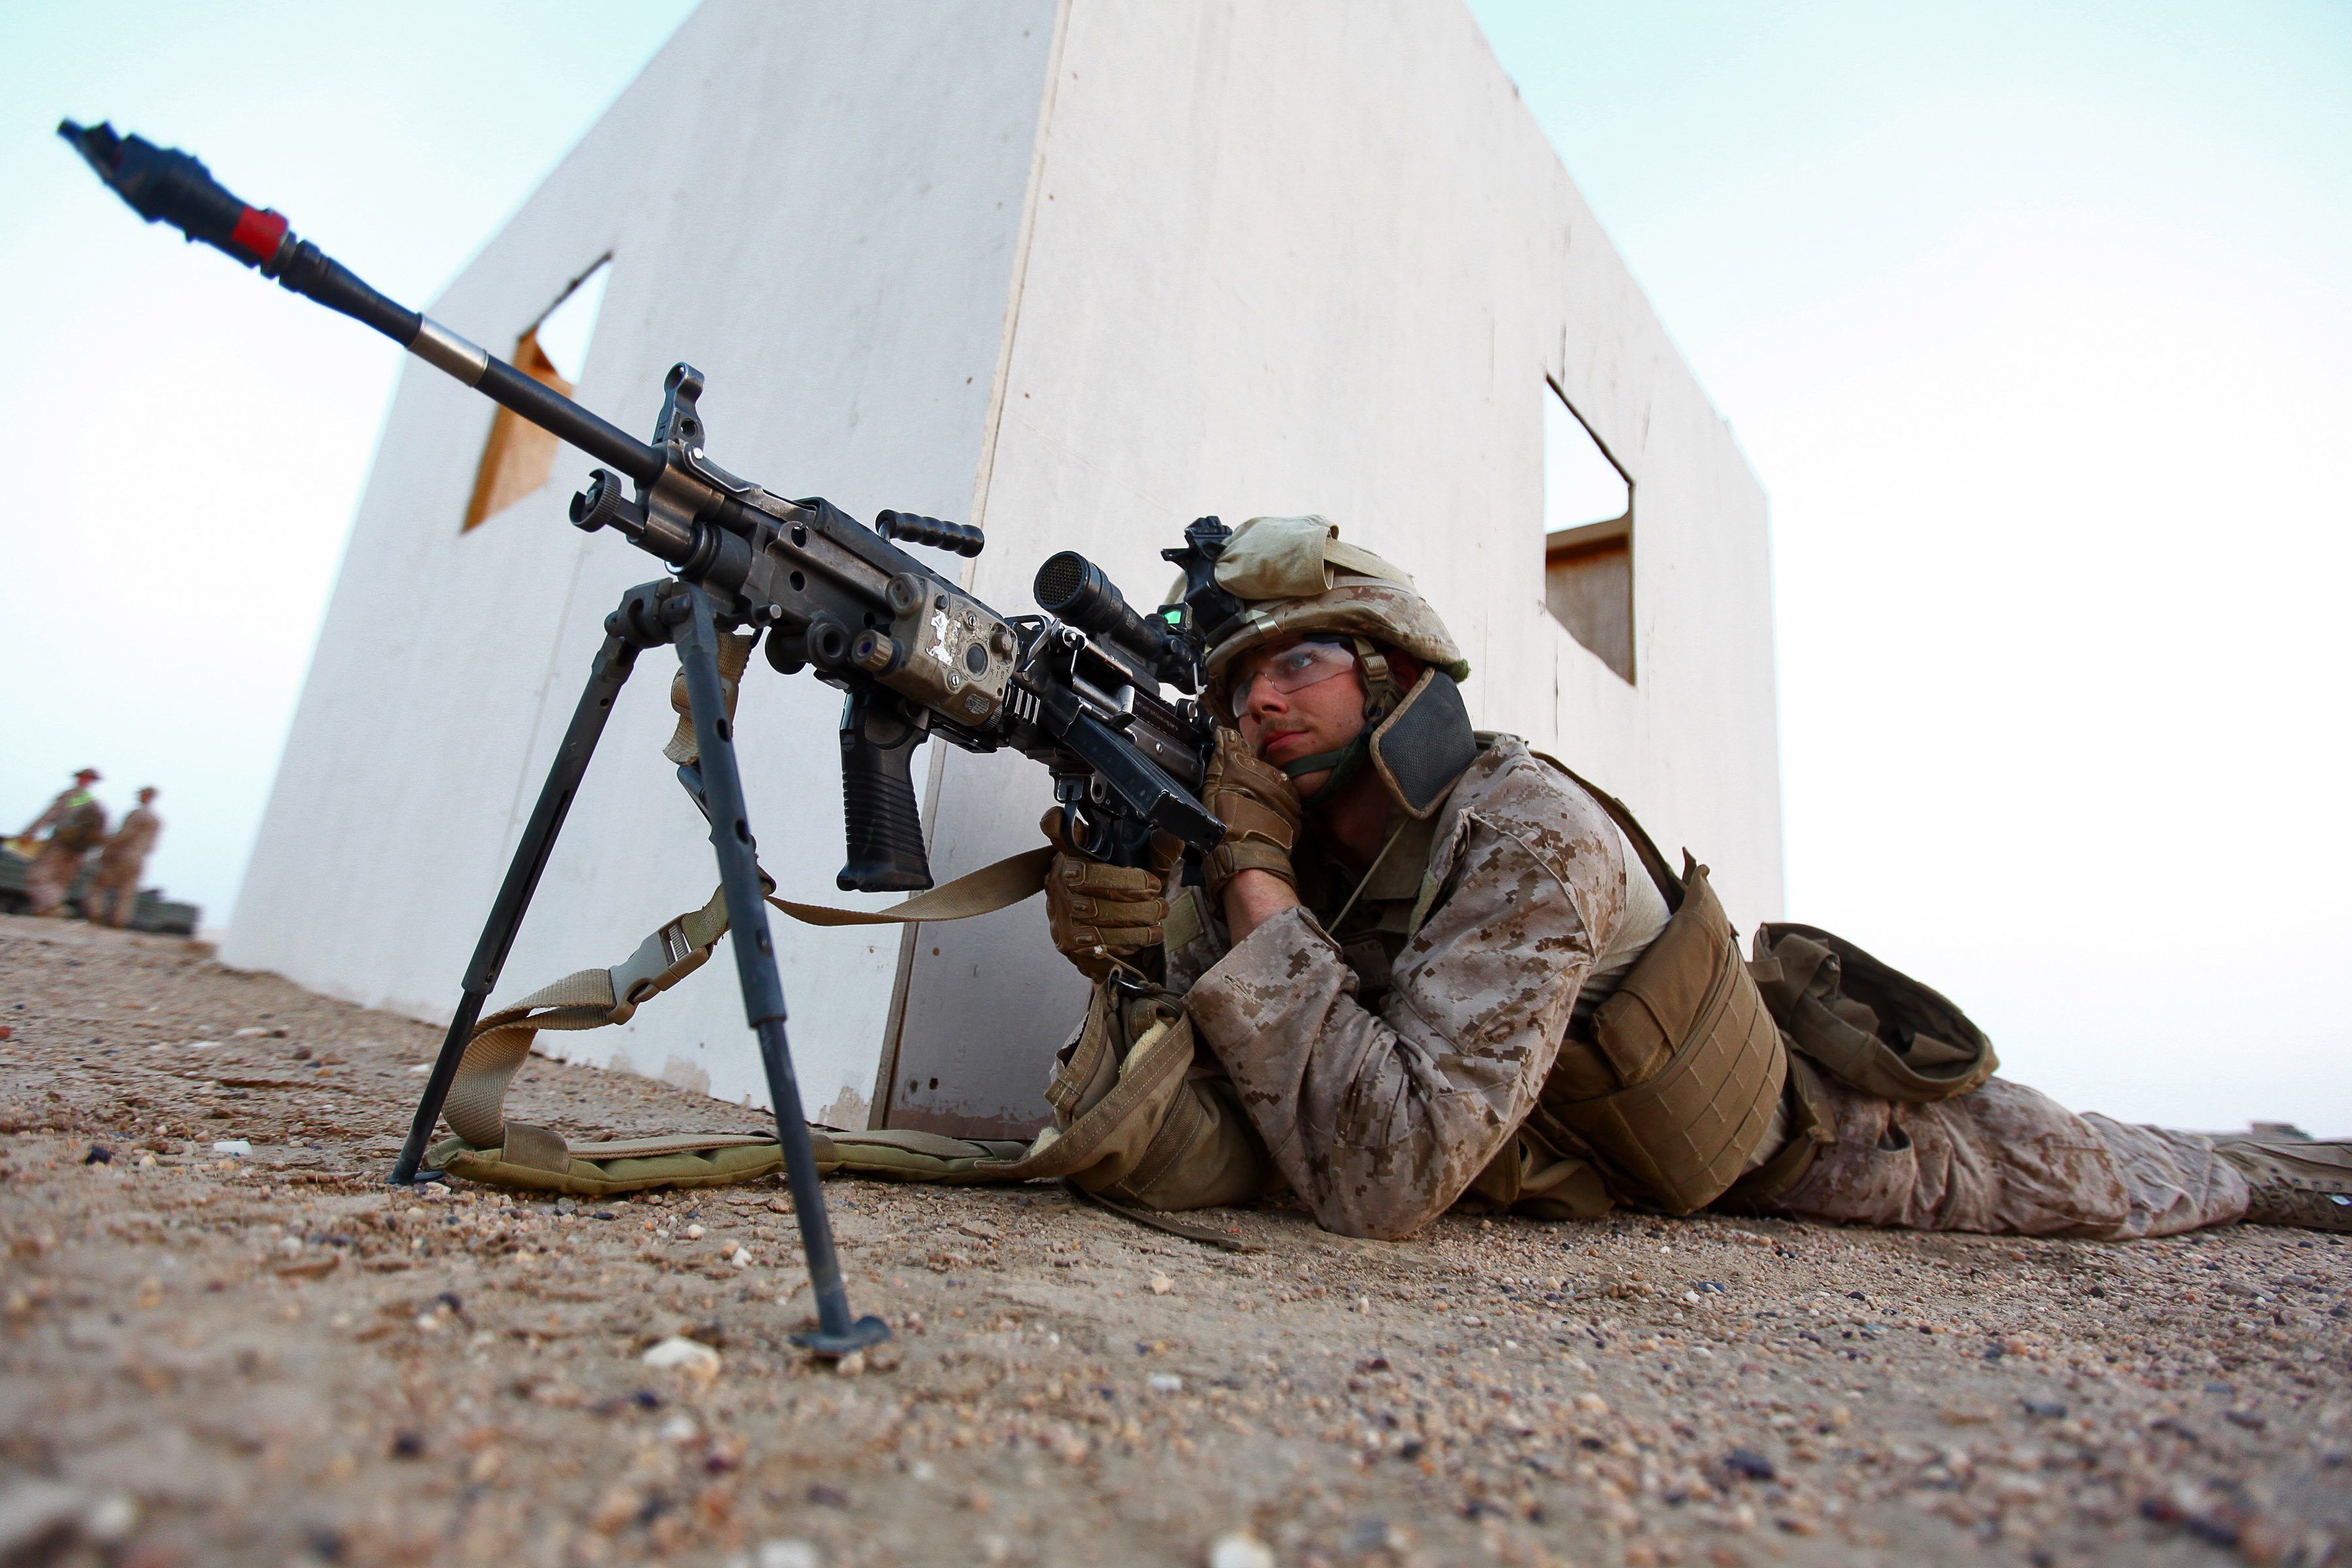 File:Marine with a M249 equiped with rifle grenade and ...